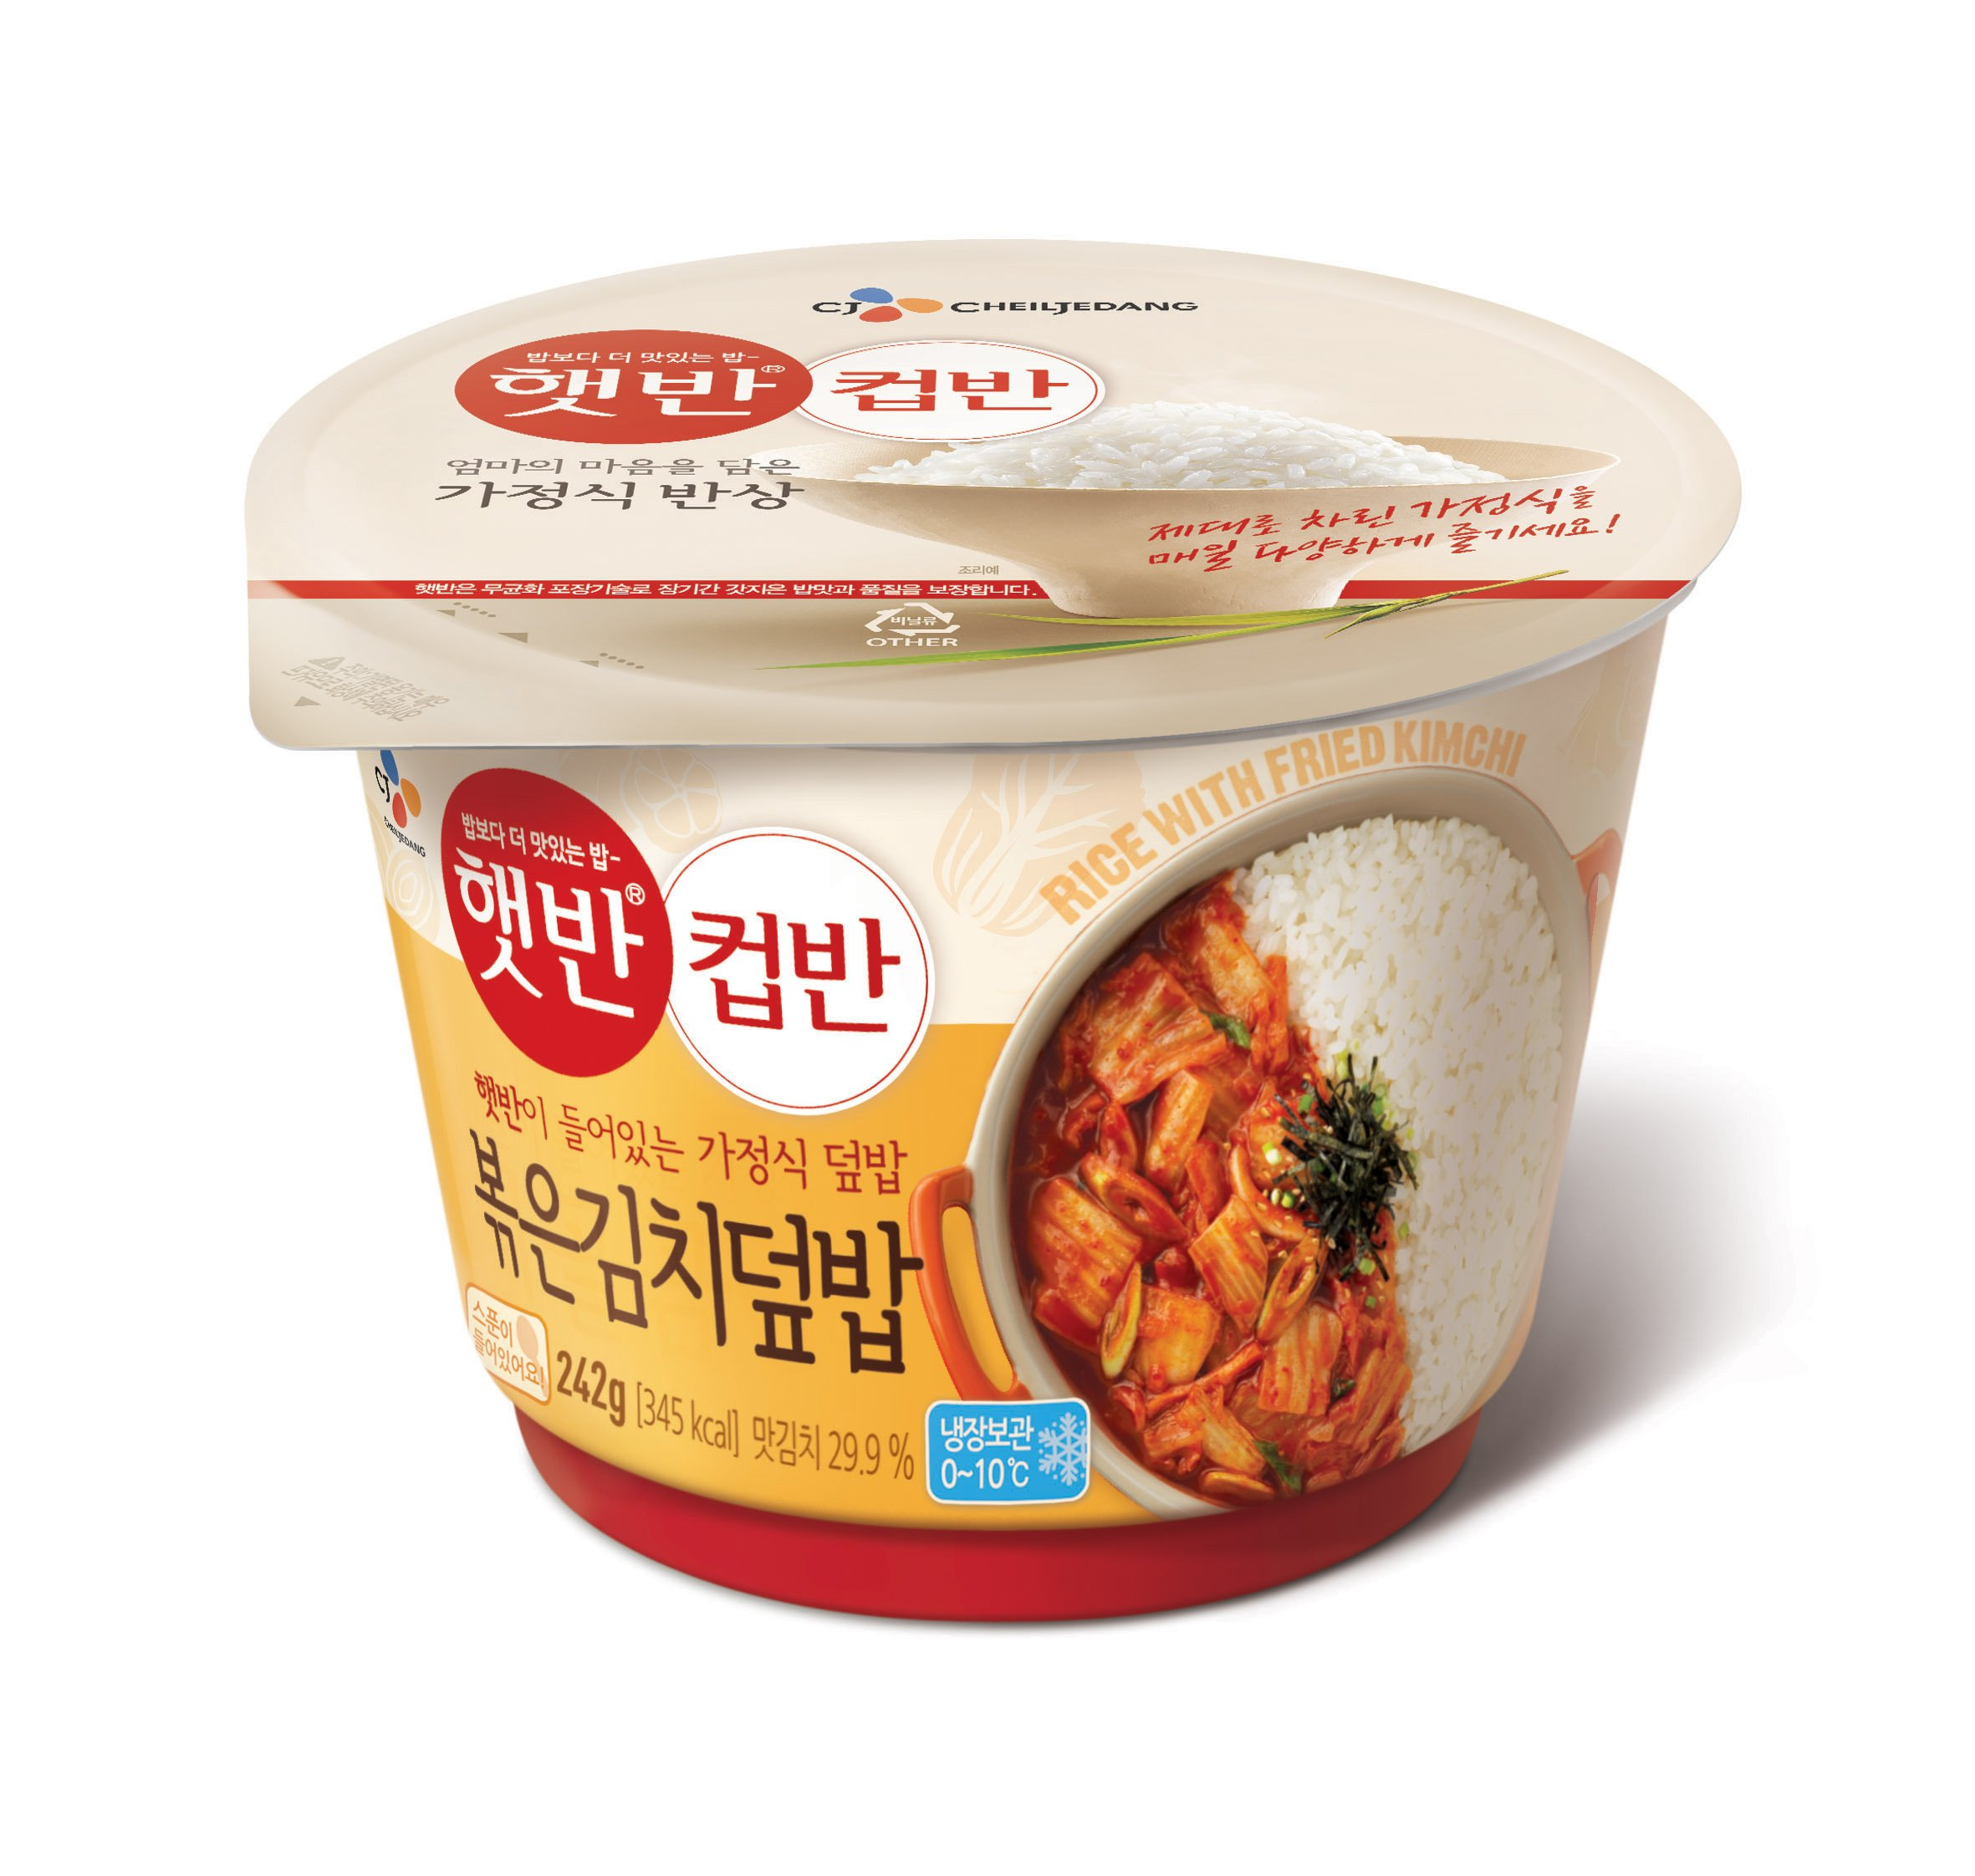 CJ Cupbahn Hatbahn Microwavable Rice Bowls (Fried Kimch (김치덮밥), 2 Pack)